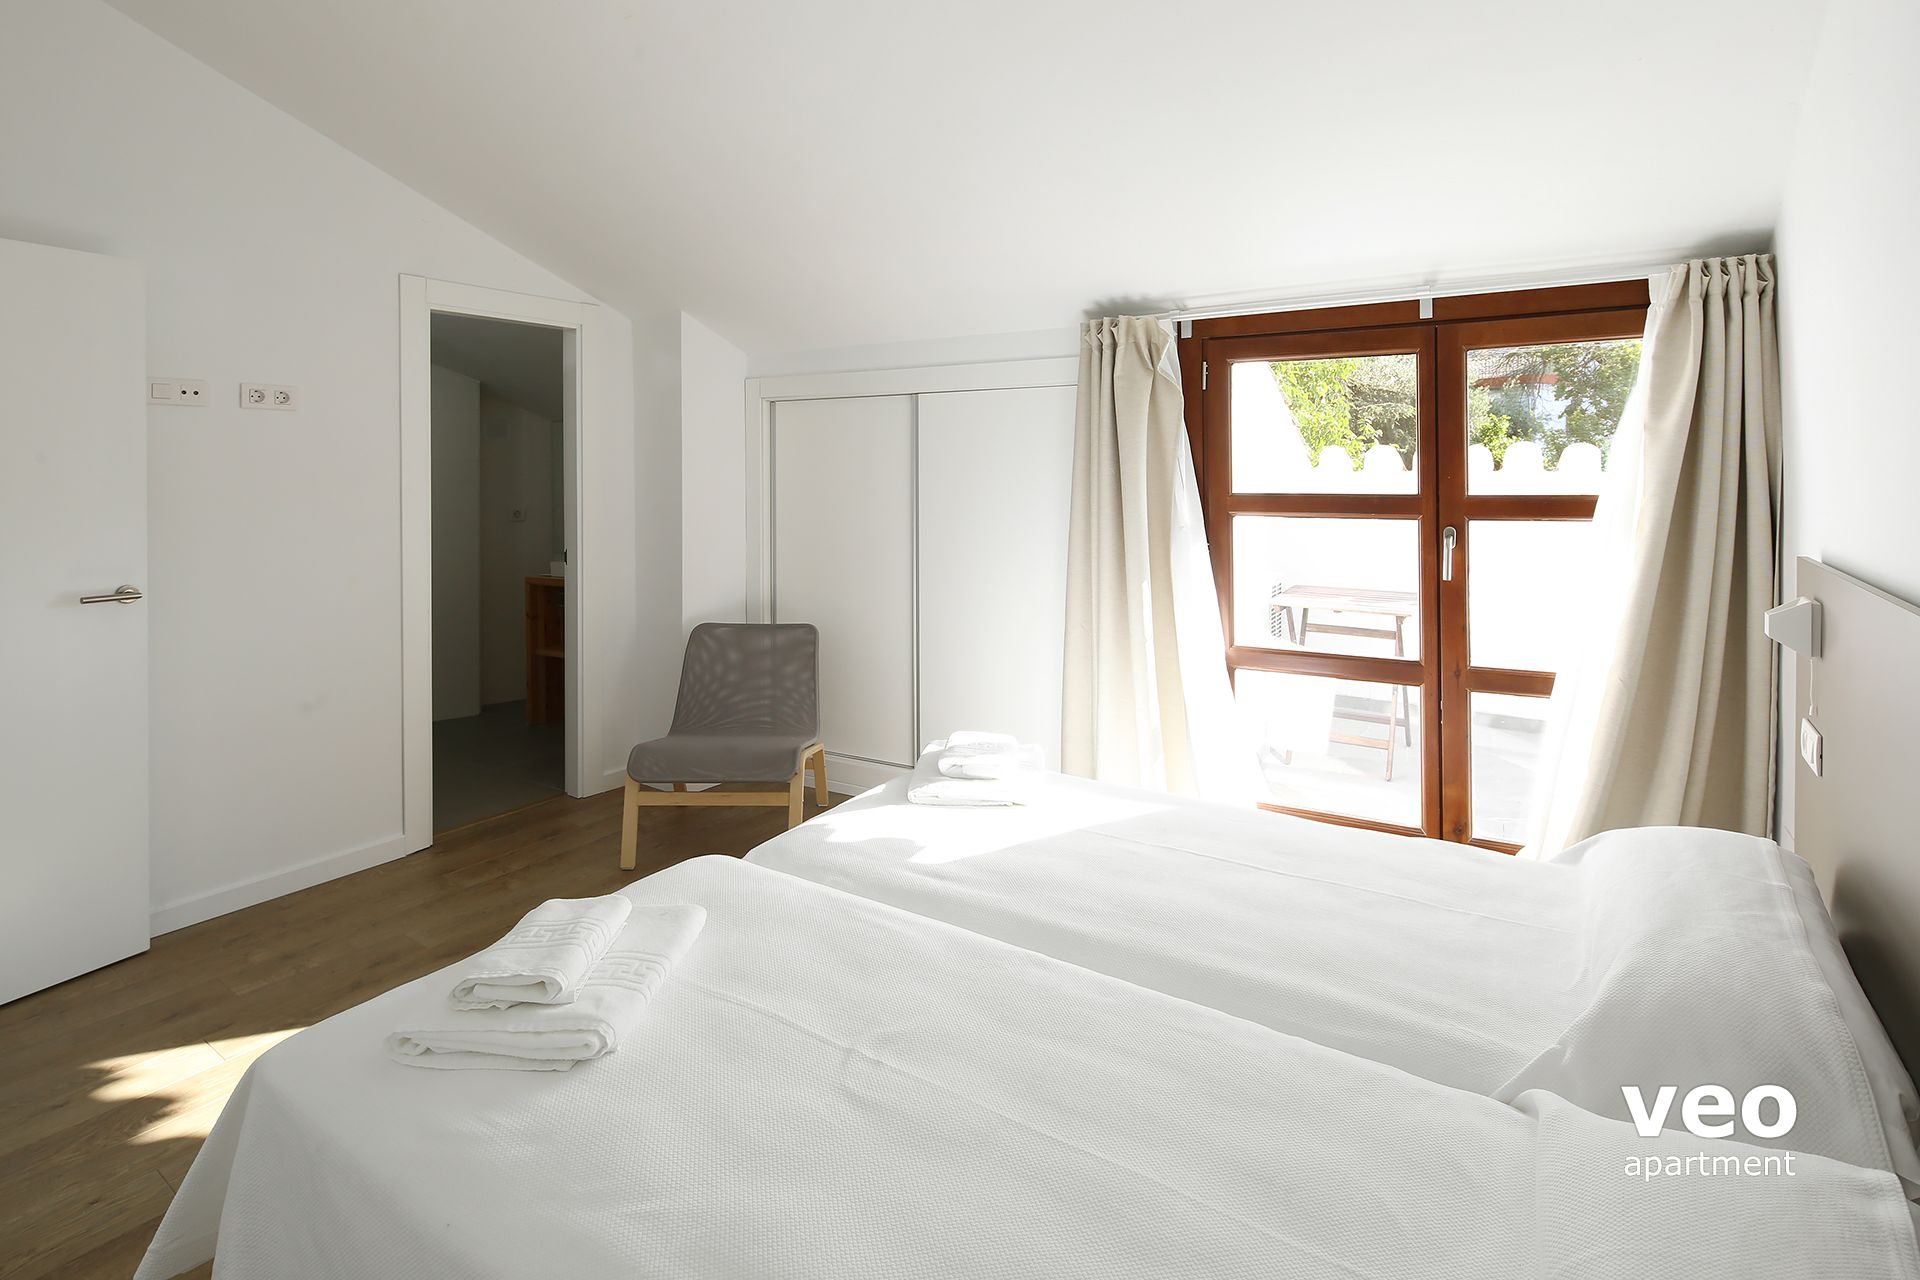 Seville apartment san jos alta street seville spain san 1 bedroom apartments san jose